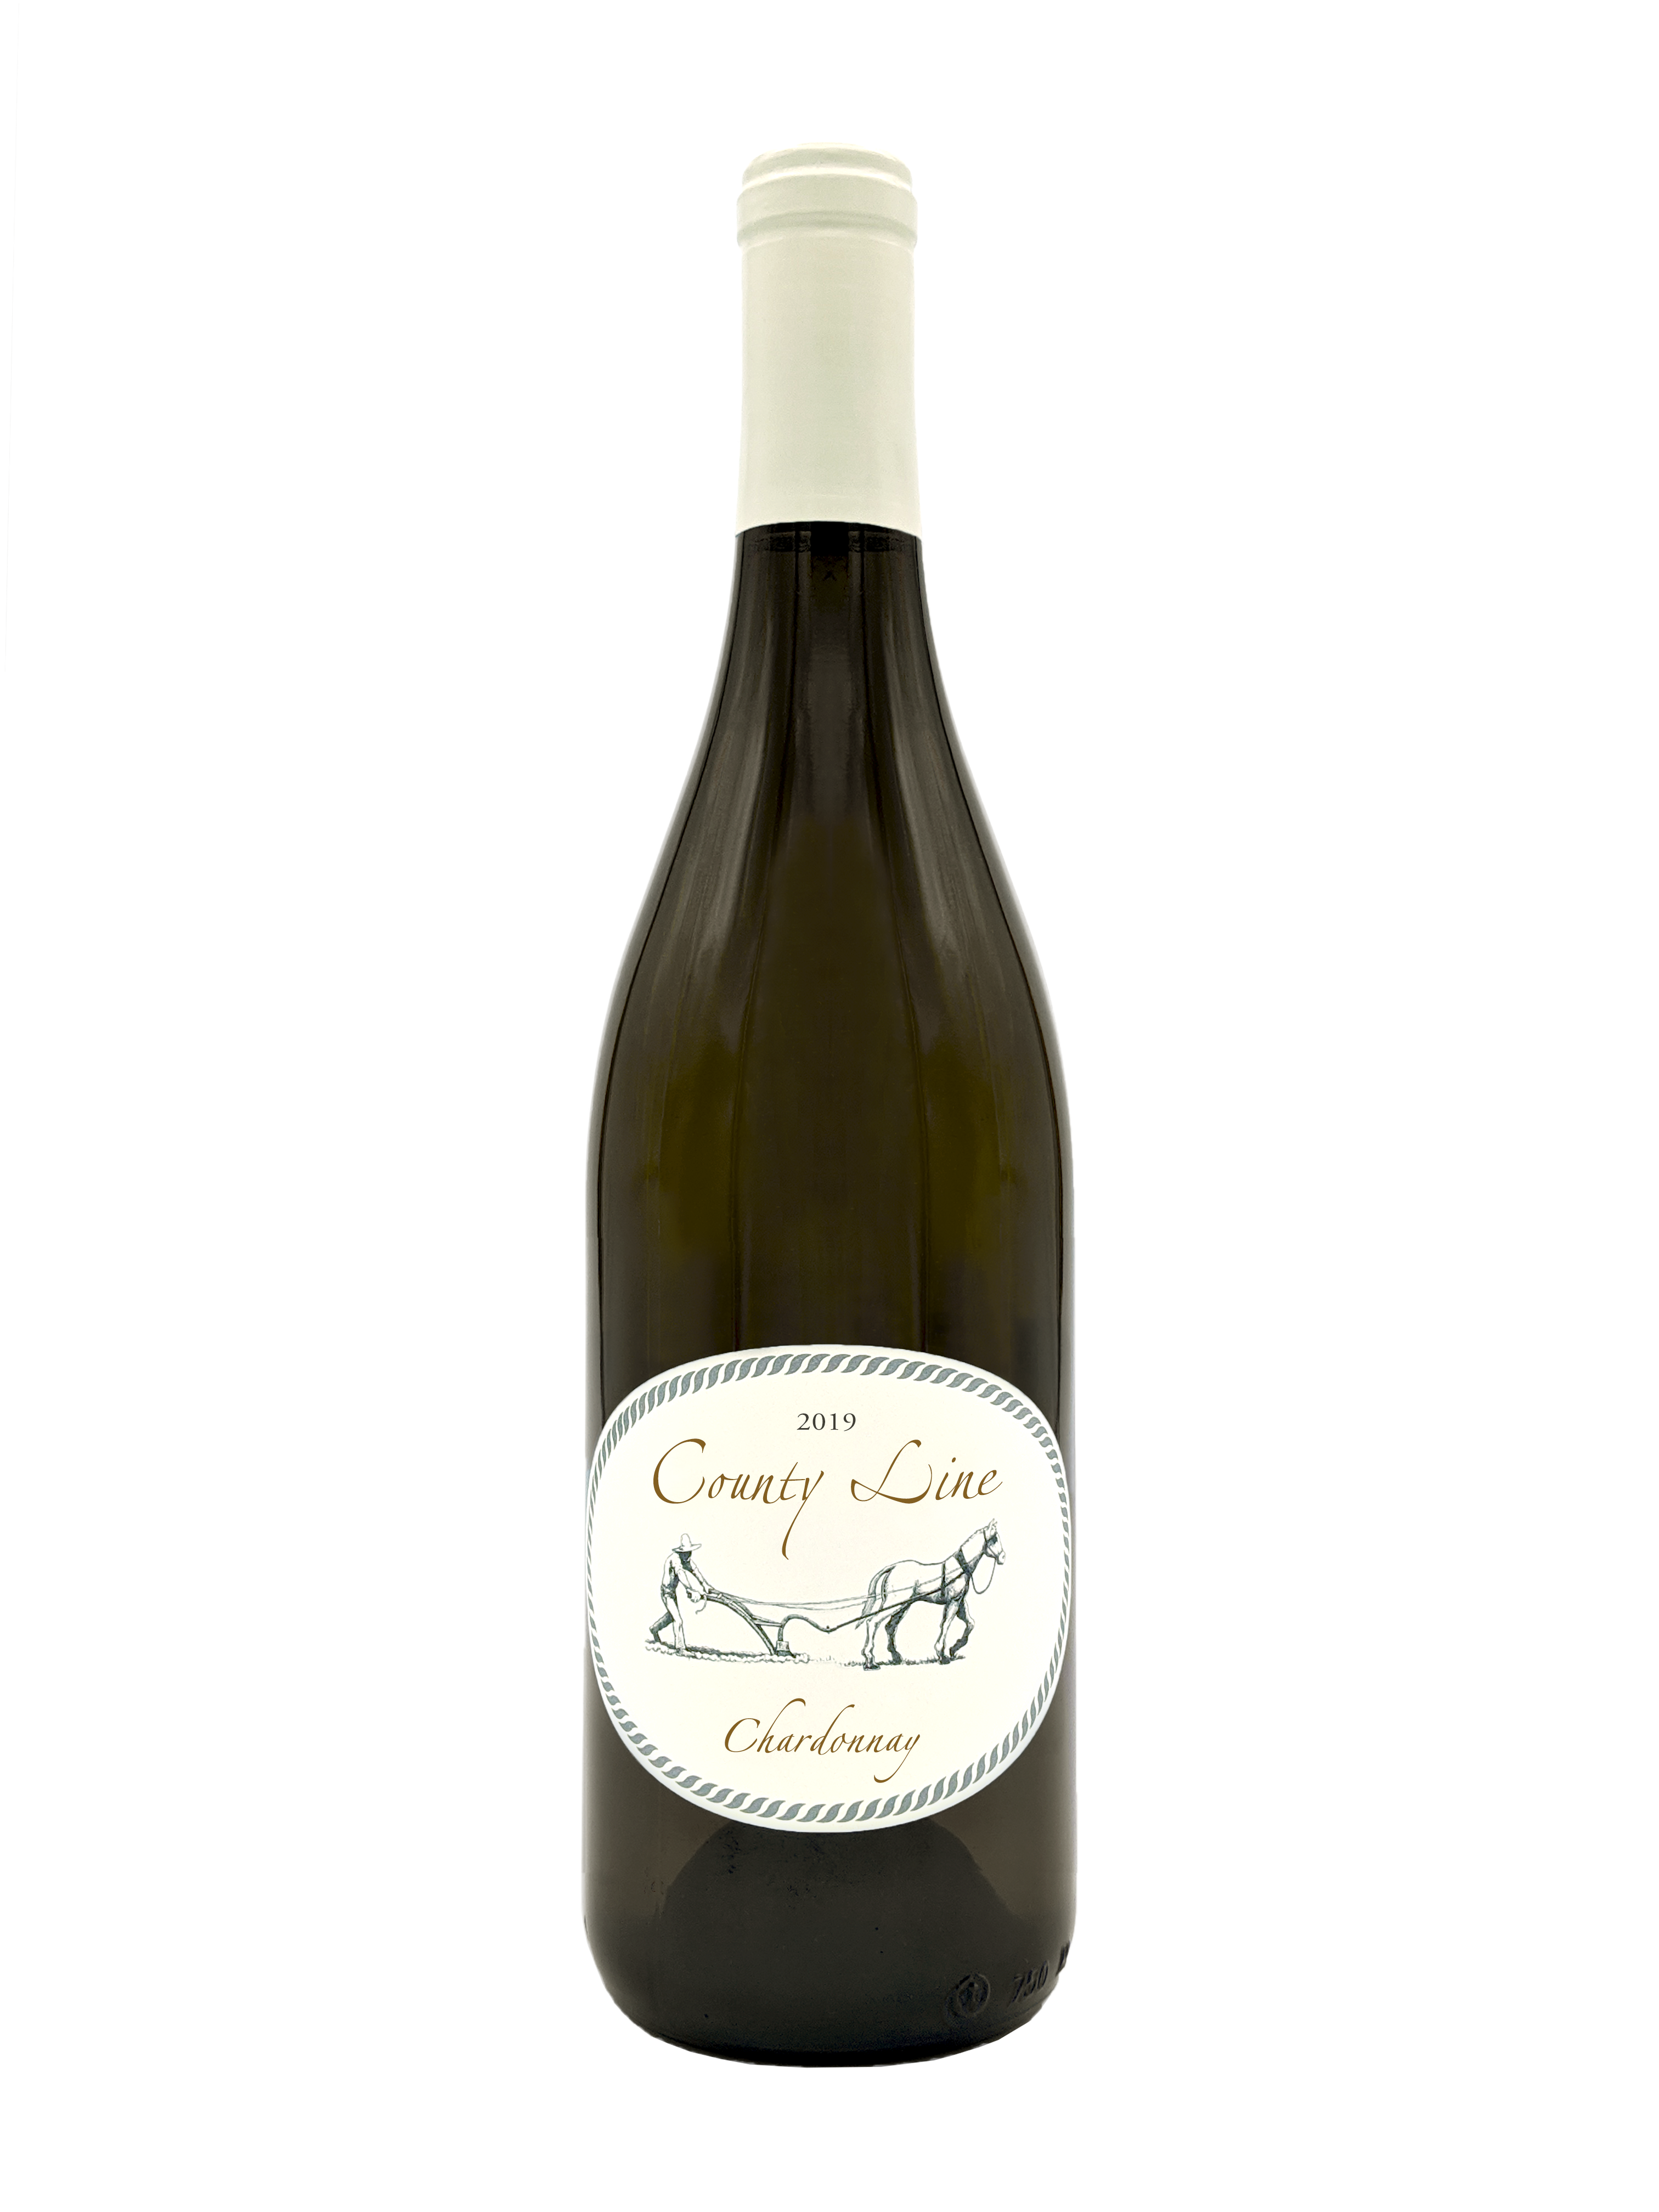 2019 county line chardonnay bottle